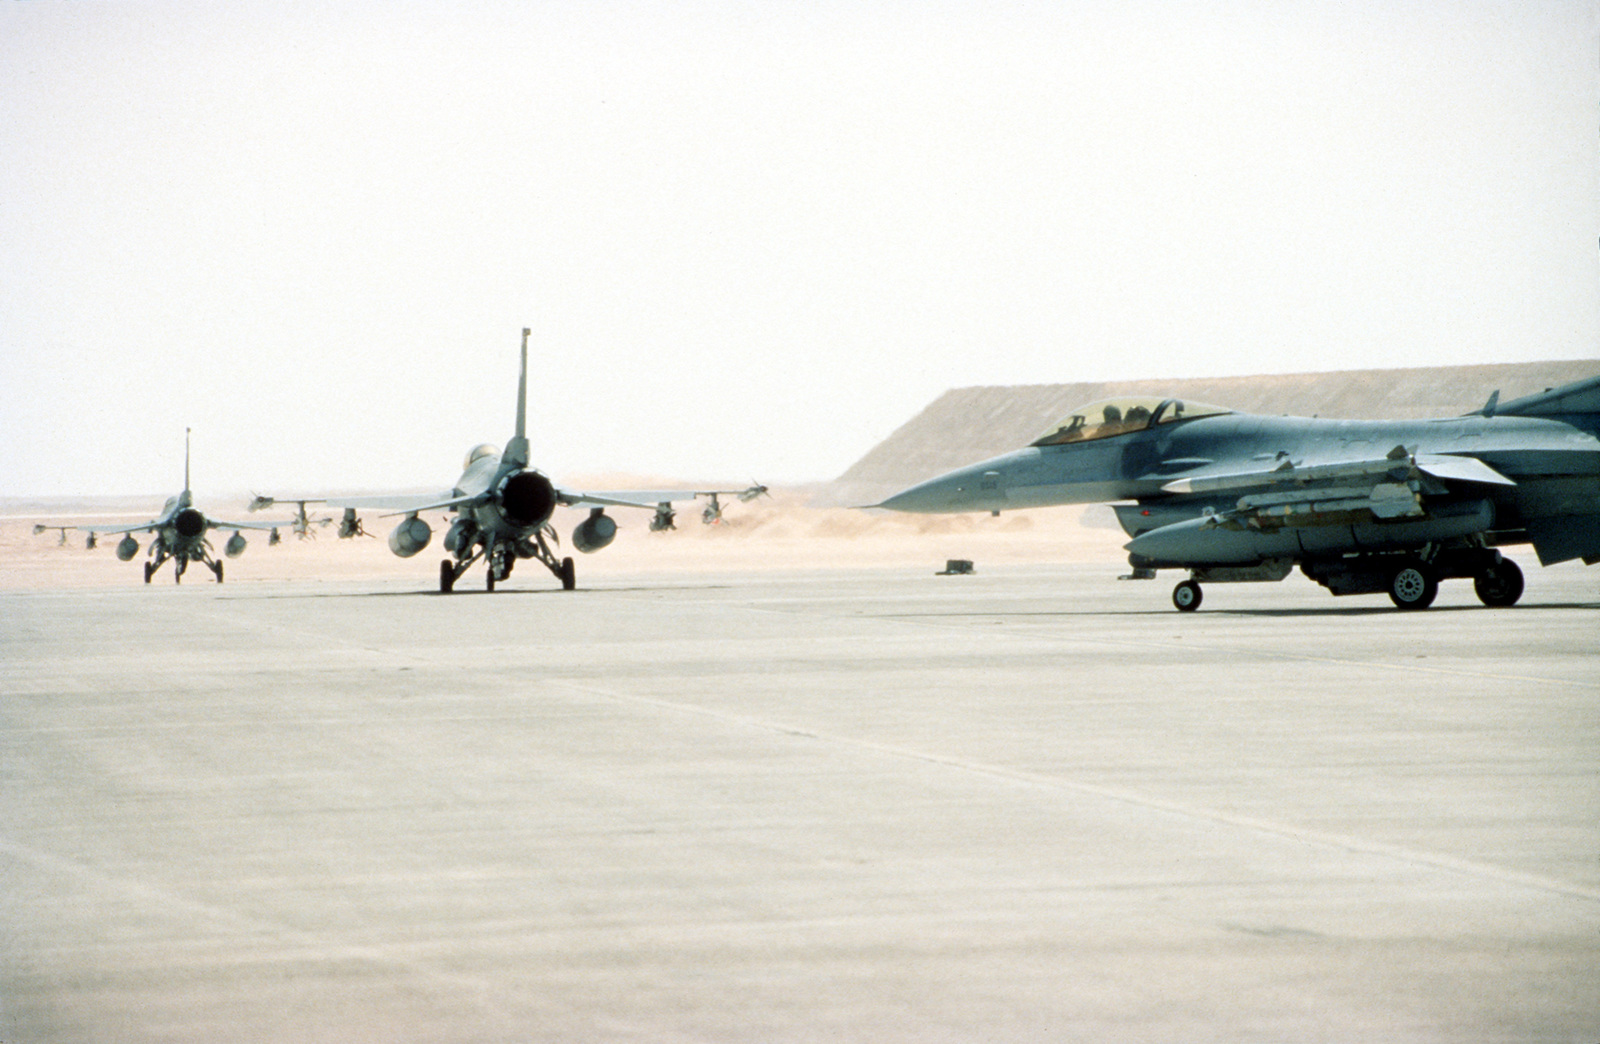 F-16 Fighting Falcons with the 69th Fighter Squadron, Moody Air Force Base, Georgia, roll out of the blocks as they taxi towards the runway. The Aircraft and personnel from the 69th Fighter Squadron are providing Fighter Aircraft support during the relocation of Operation Southern Watch and the 4404th Wing (Provisional ) from Dhahran after a terrorist bomb killed 19 Air Force personnel in June